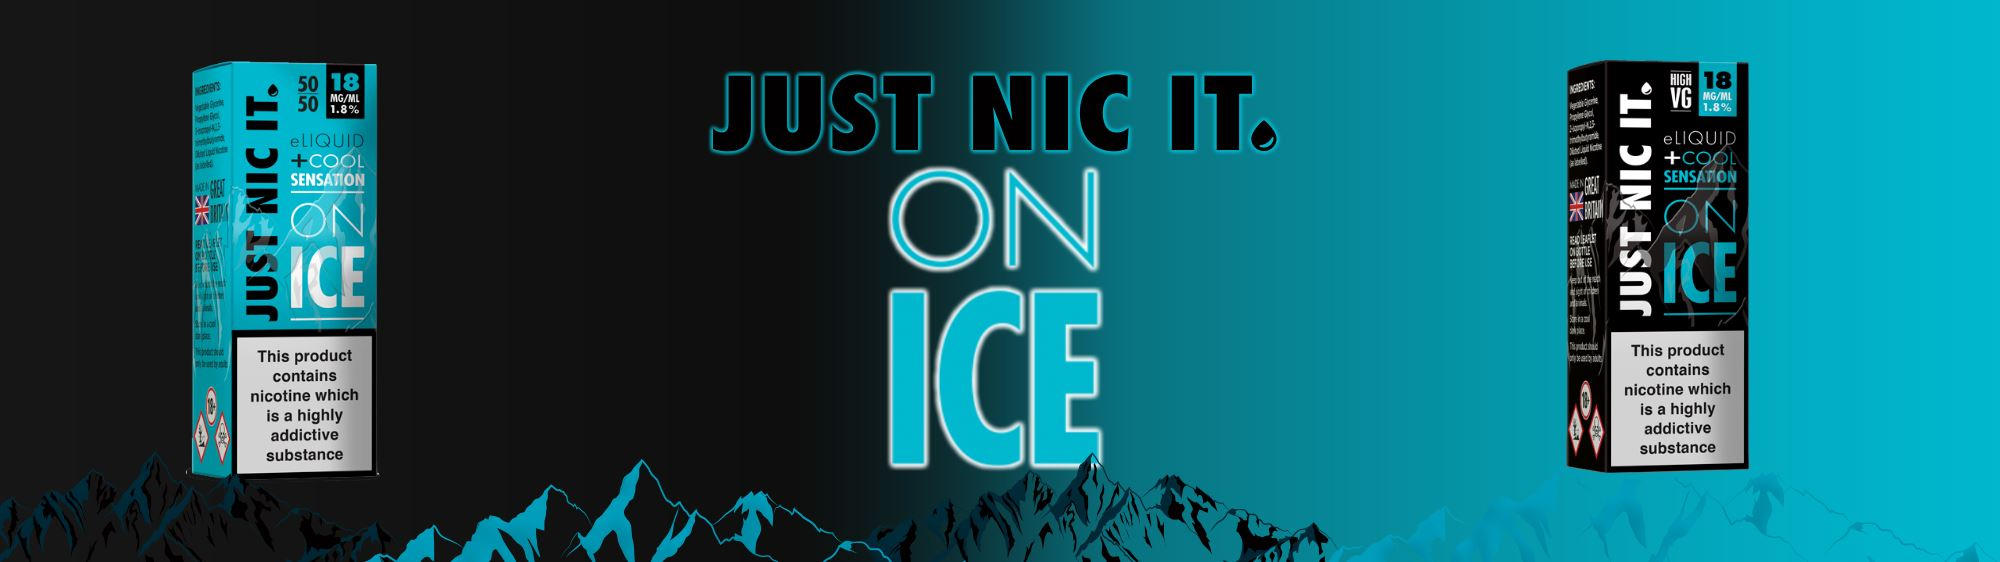 Just Nic It on ice banner